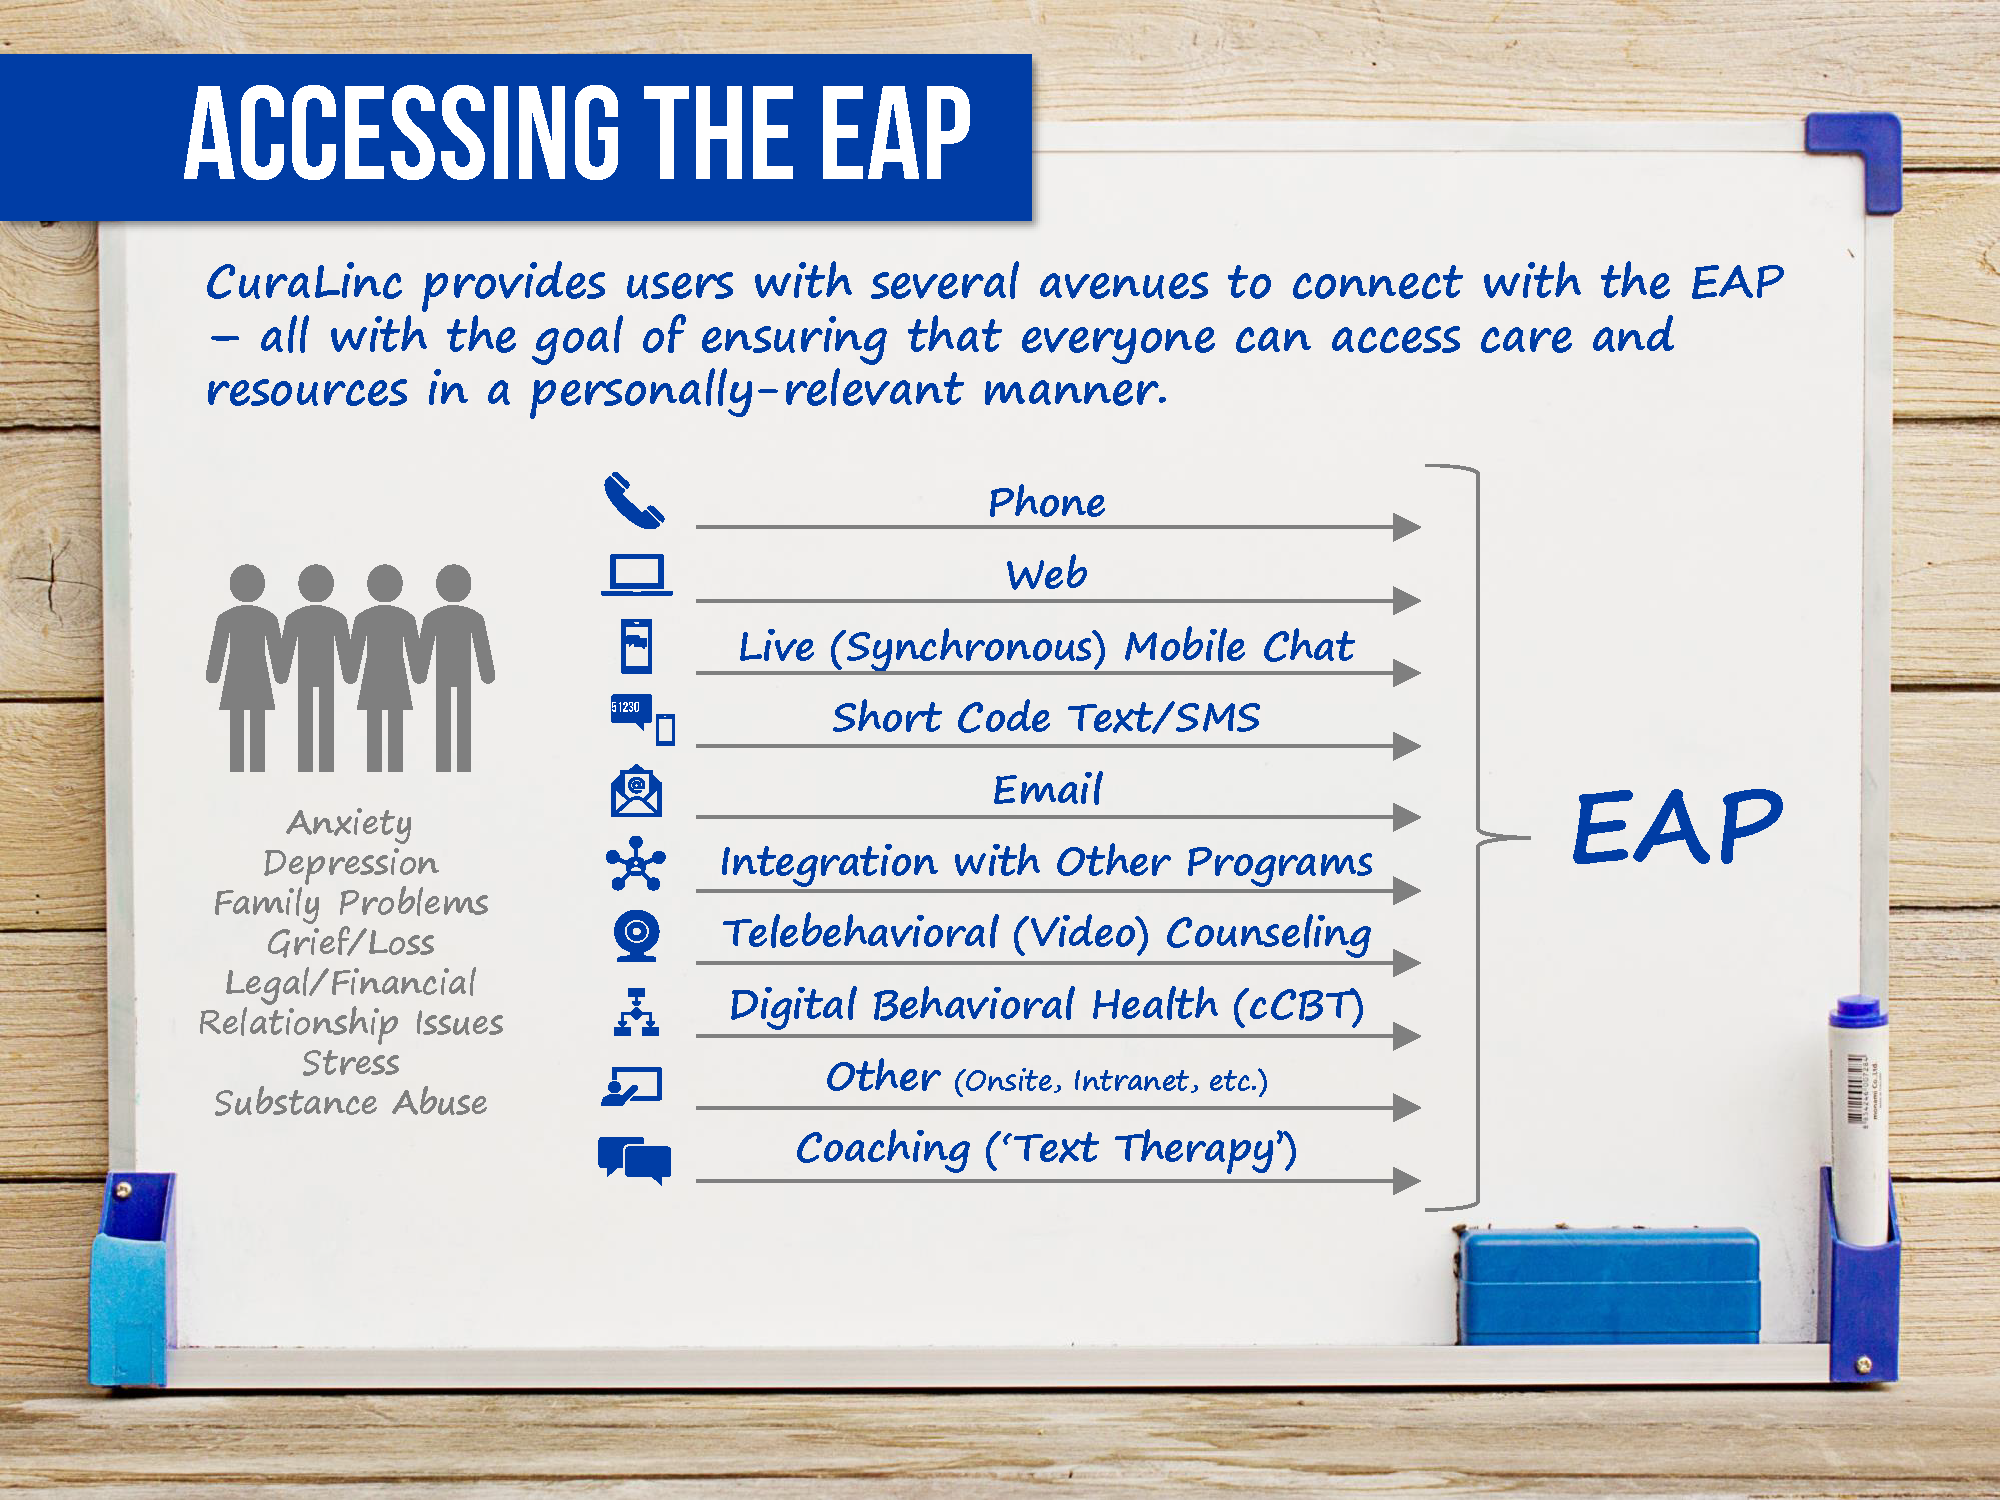 whiteboard showing how to access the EAP